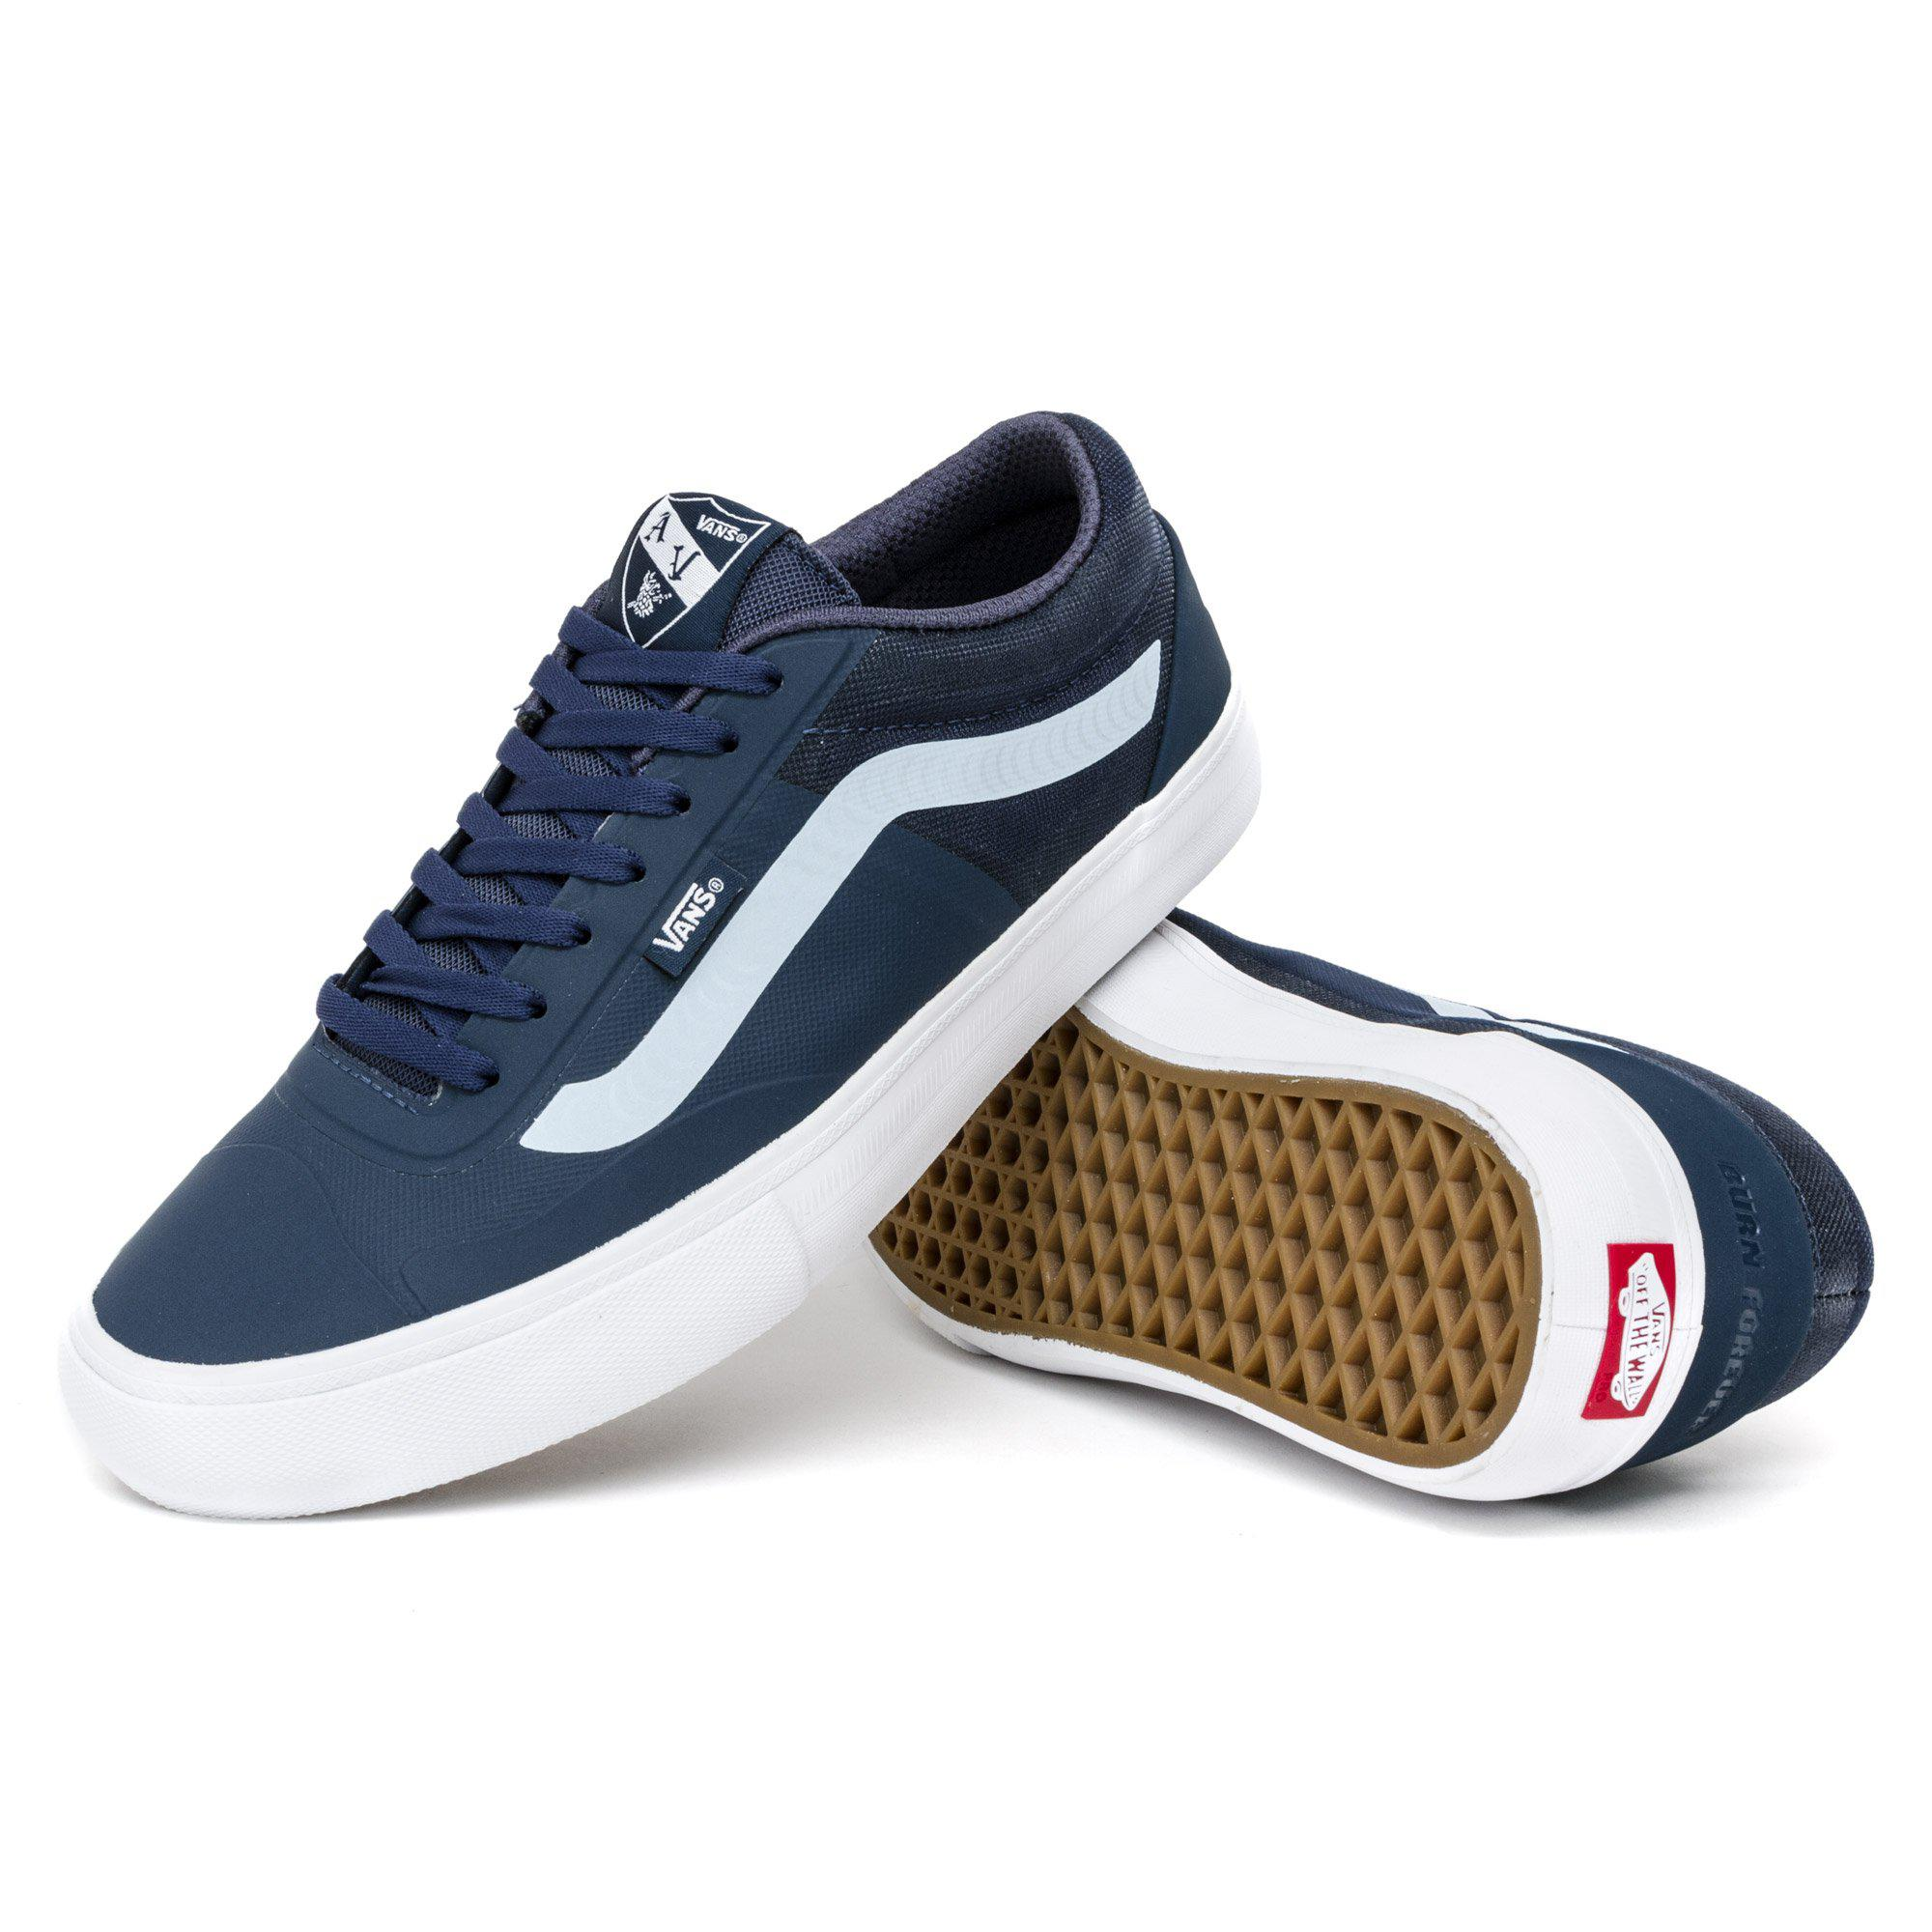 ad341cdb6dcc Lyst - Vans X Spitfire Av Rapidweld Shoes in Blue for Men